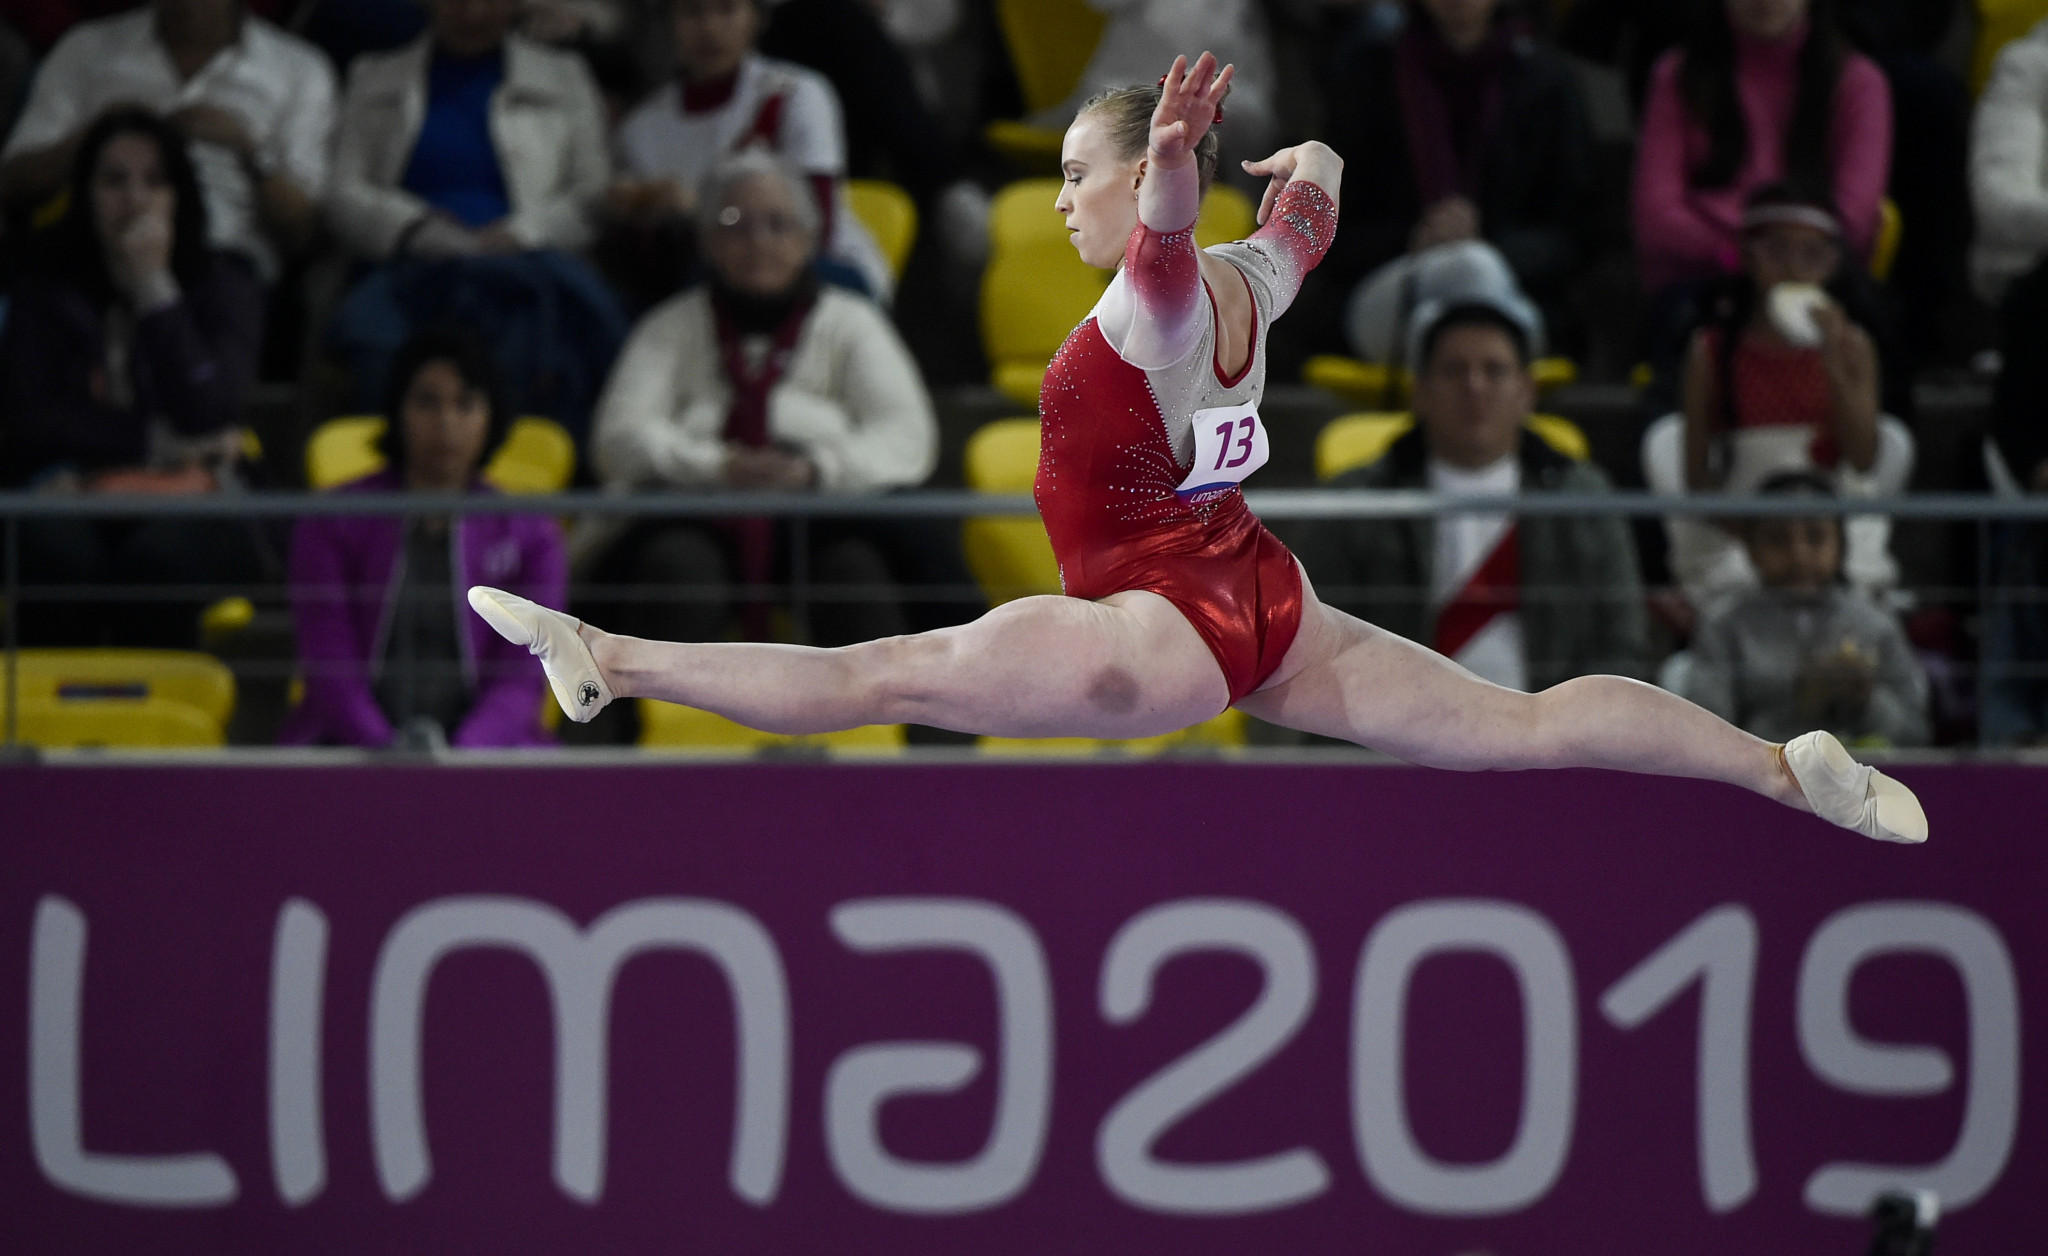 Back-to-back for Black as gymnast defends Pan American Games individual all-around title